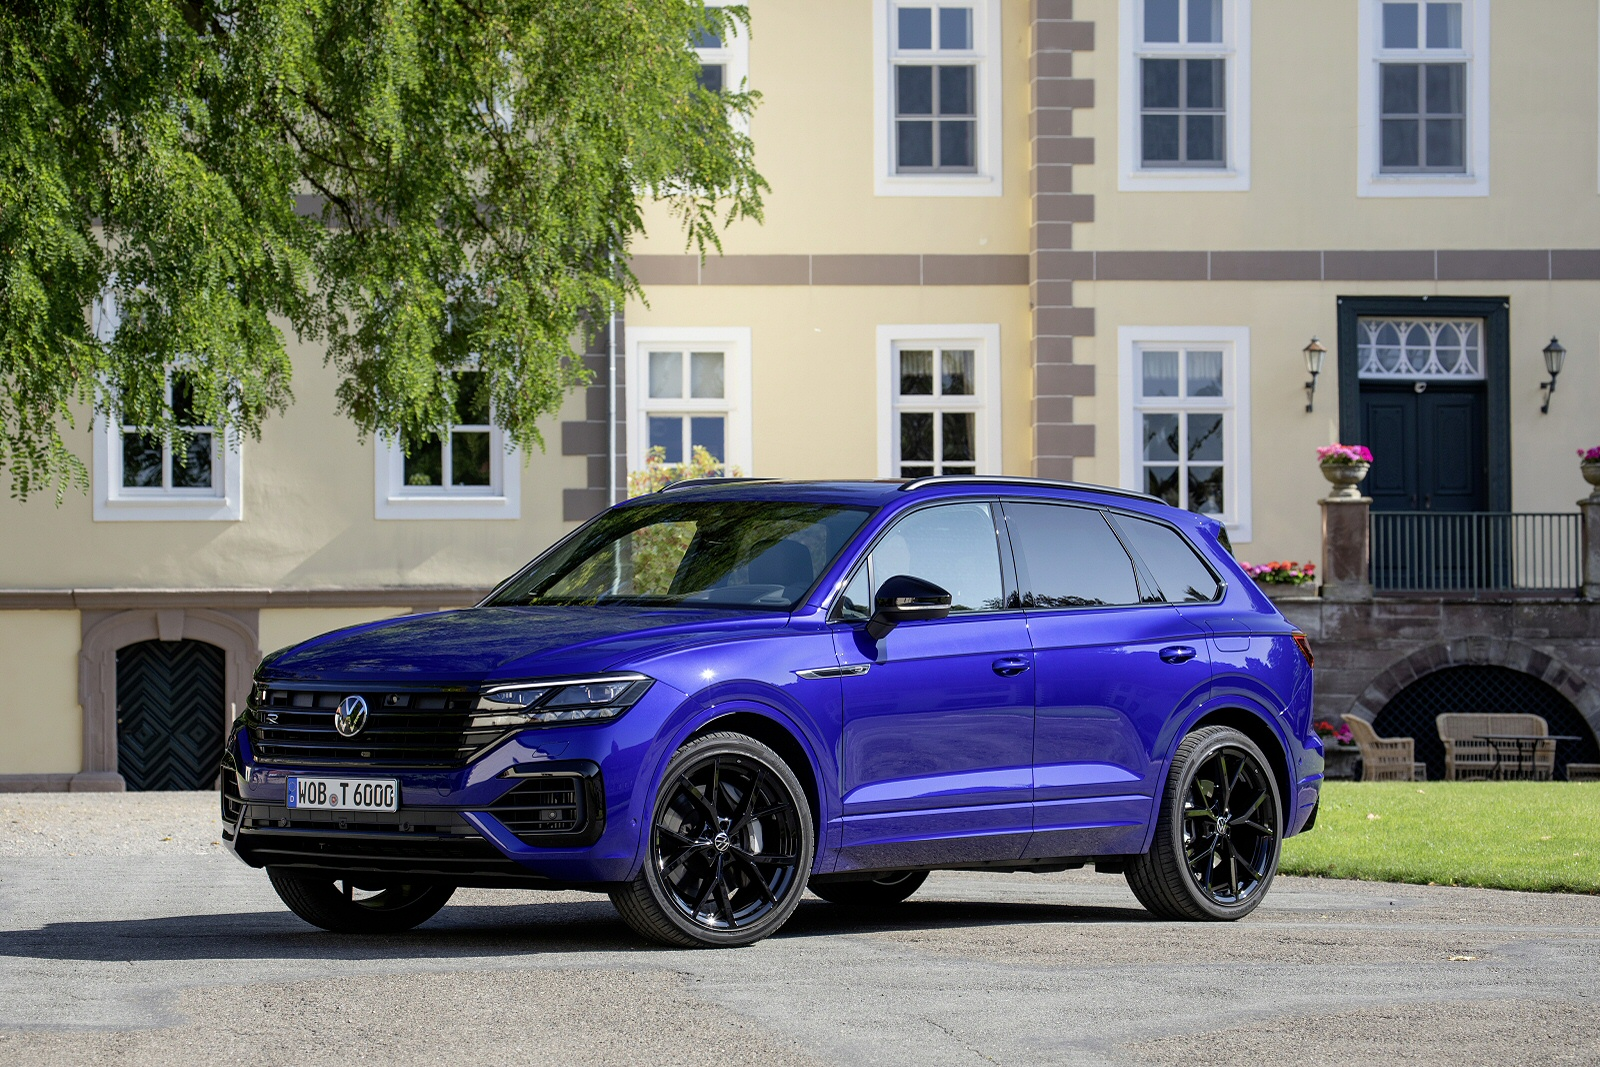 Volkswagen Touareg R + DRIVER ASSISTANCE PACK PLUS 3.0 TSI PHEV 462PS 4MOTION 8-speed Auto